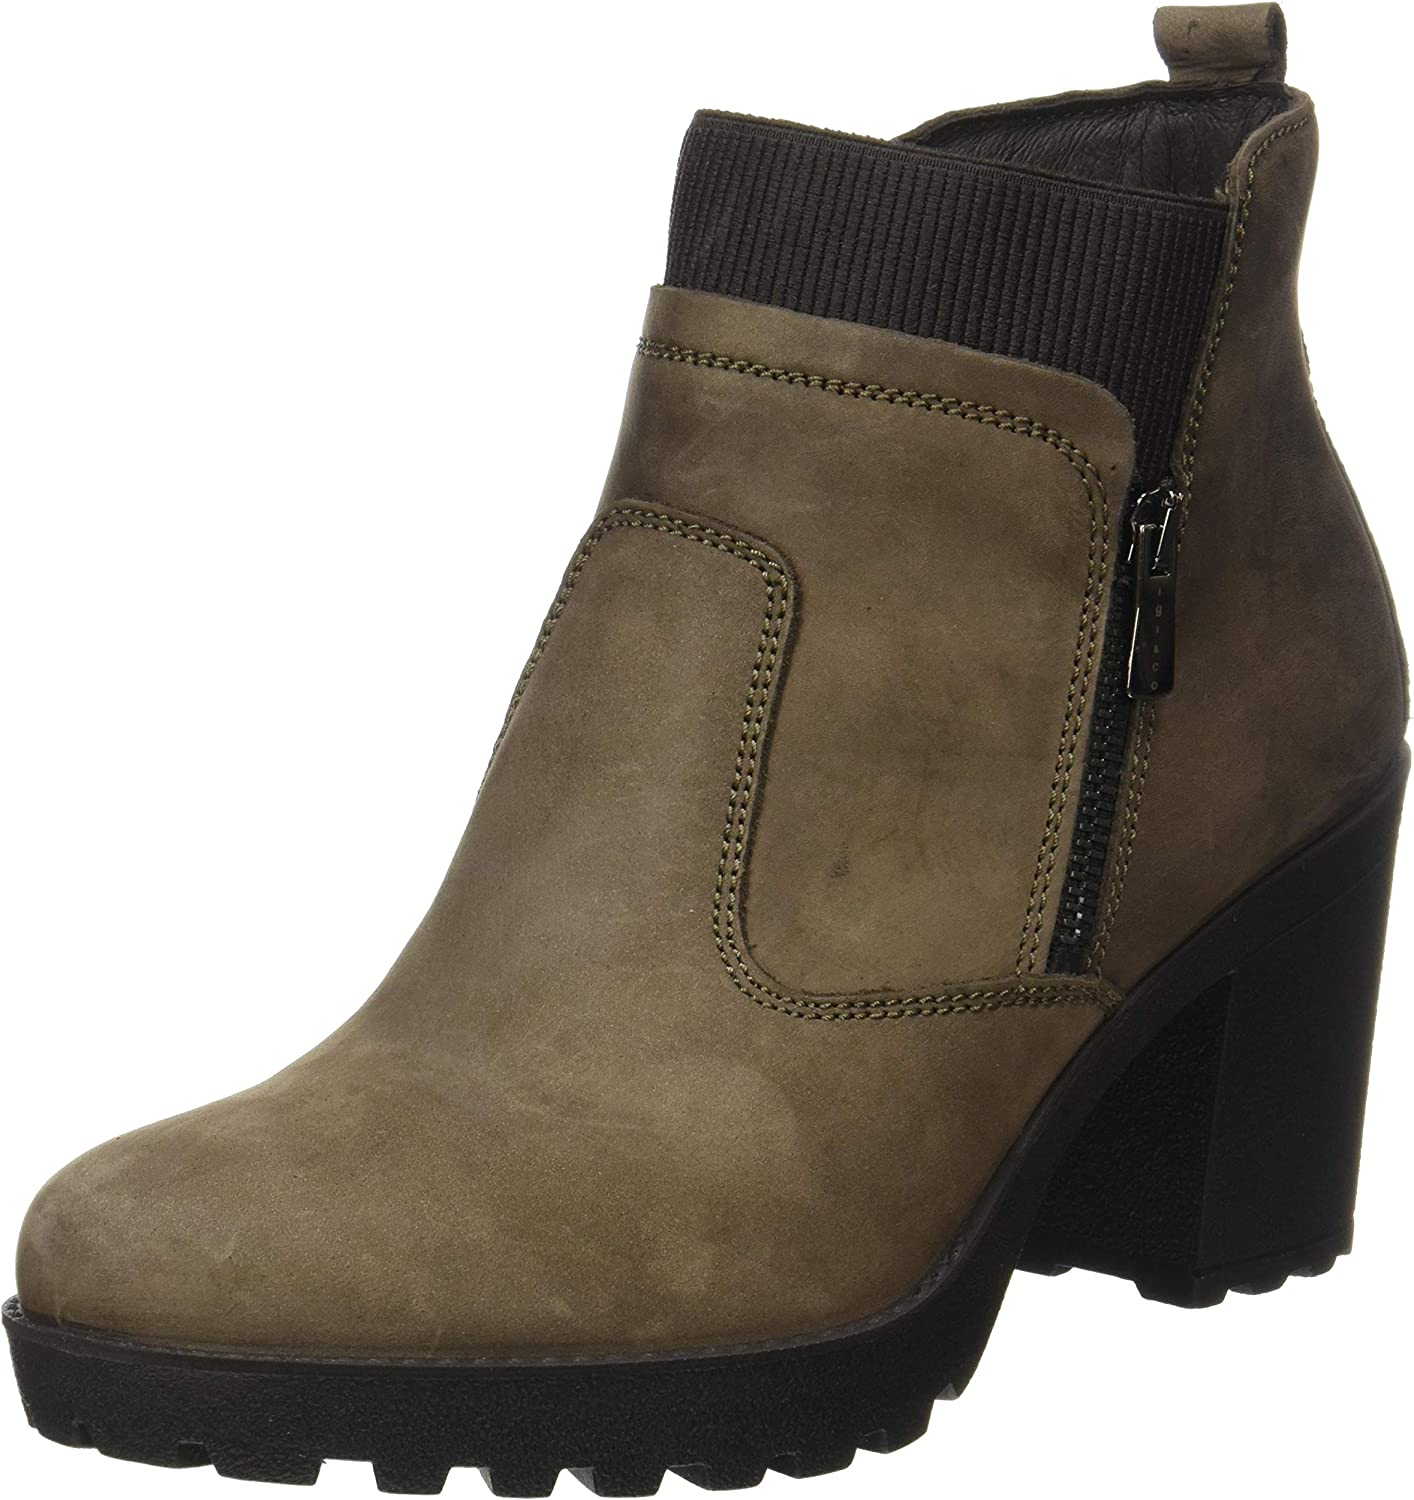 IGICo Women's SEAL limited Discount mail order product Dvi 61578 Ankle 6.5 Moro us T Boot